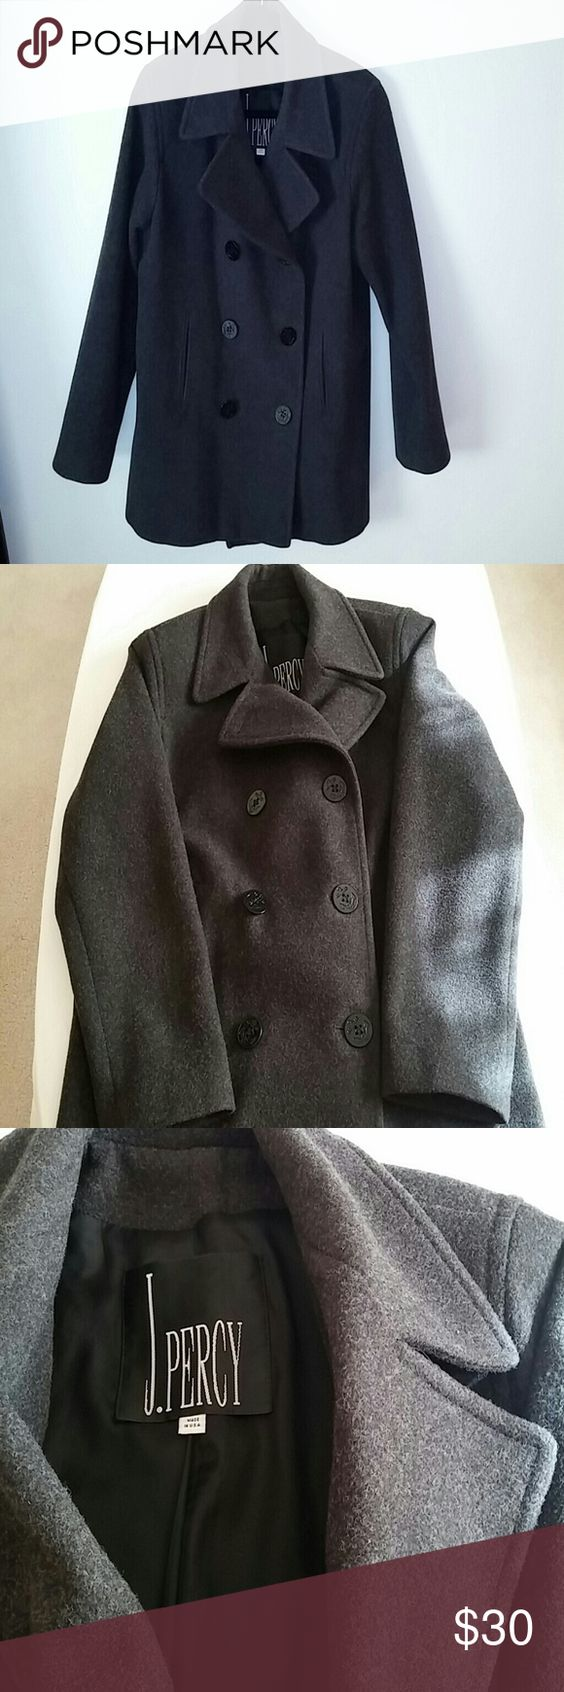 Vintage Women's Double Breasted Wool Pea Coat J Percy 100% wool ...